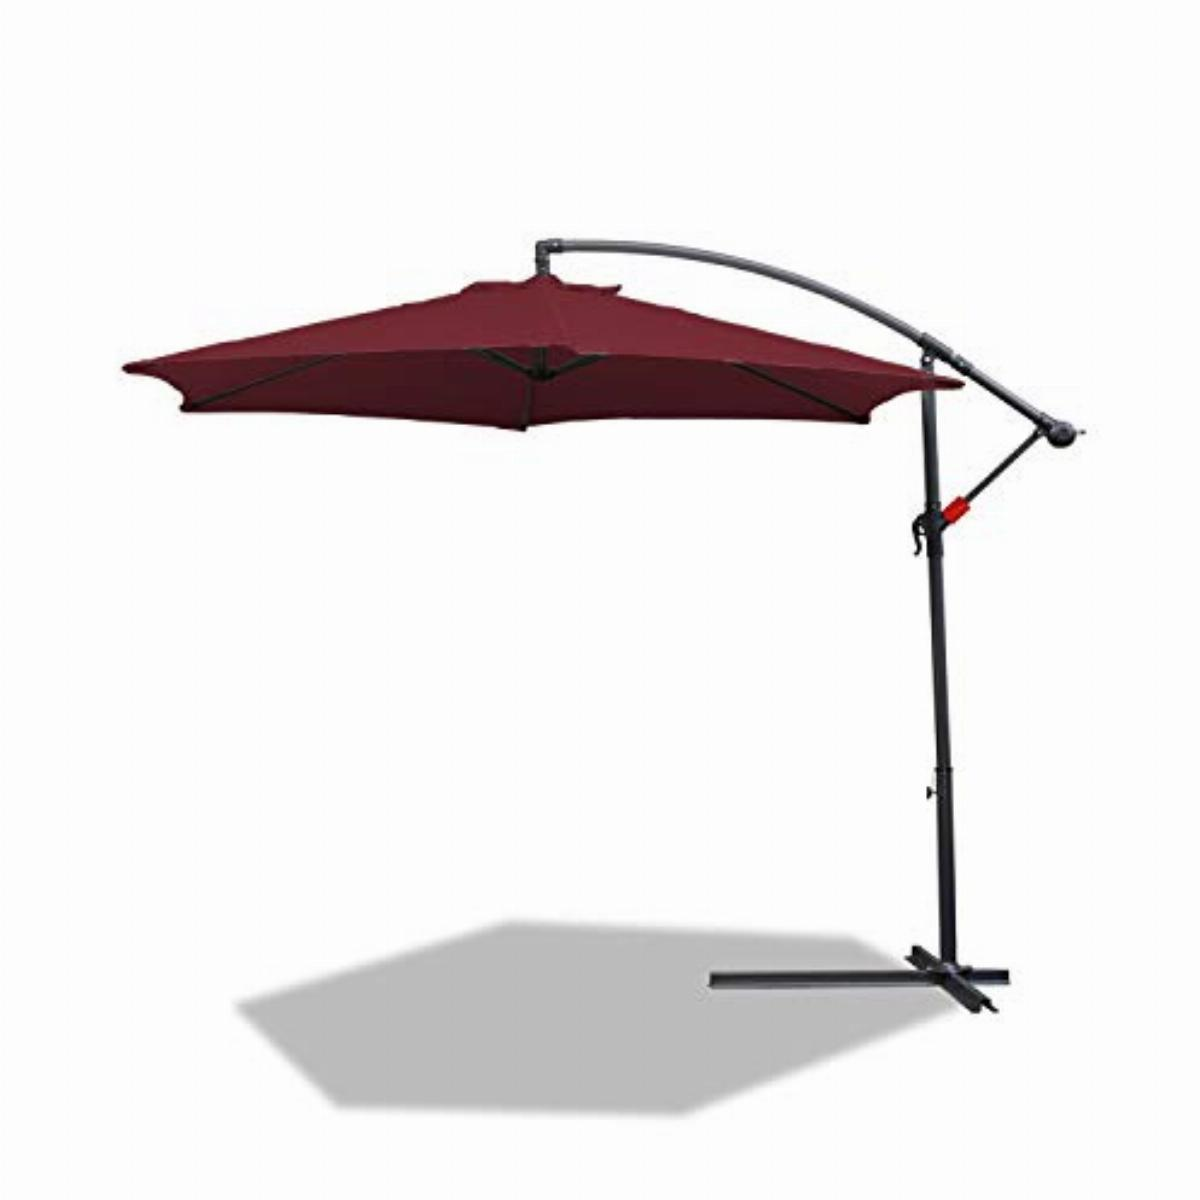 Patio Umbrella Cantilever with heavy duty Cross Bases /& Crank-lift ideal for Commercial And Residential Use BMOT Garden Parasols